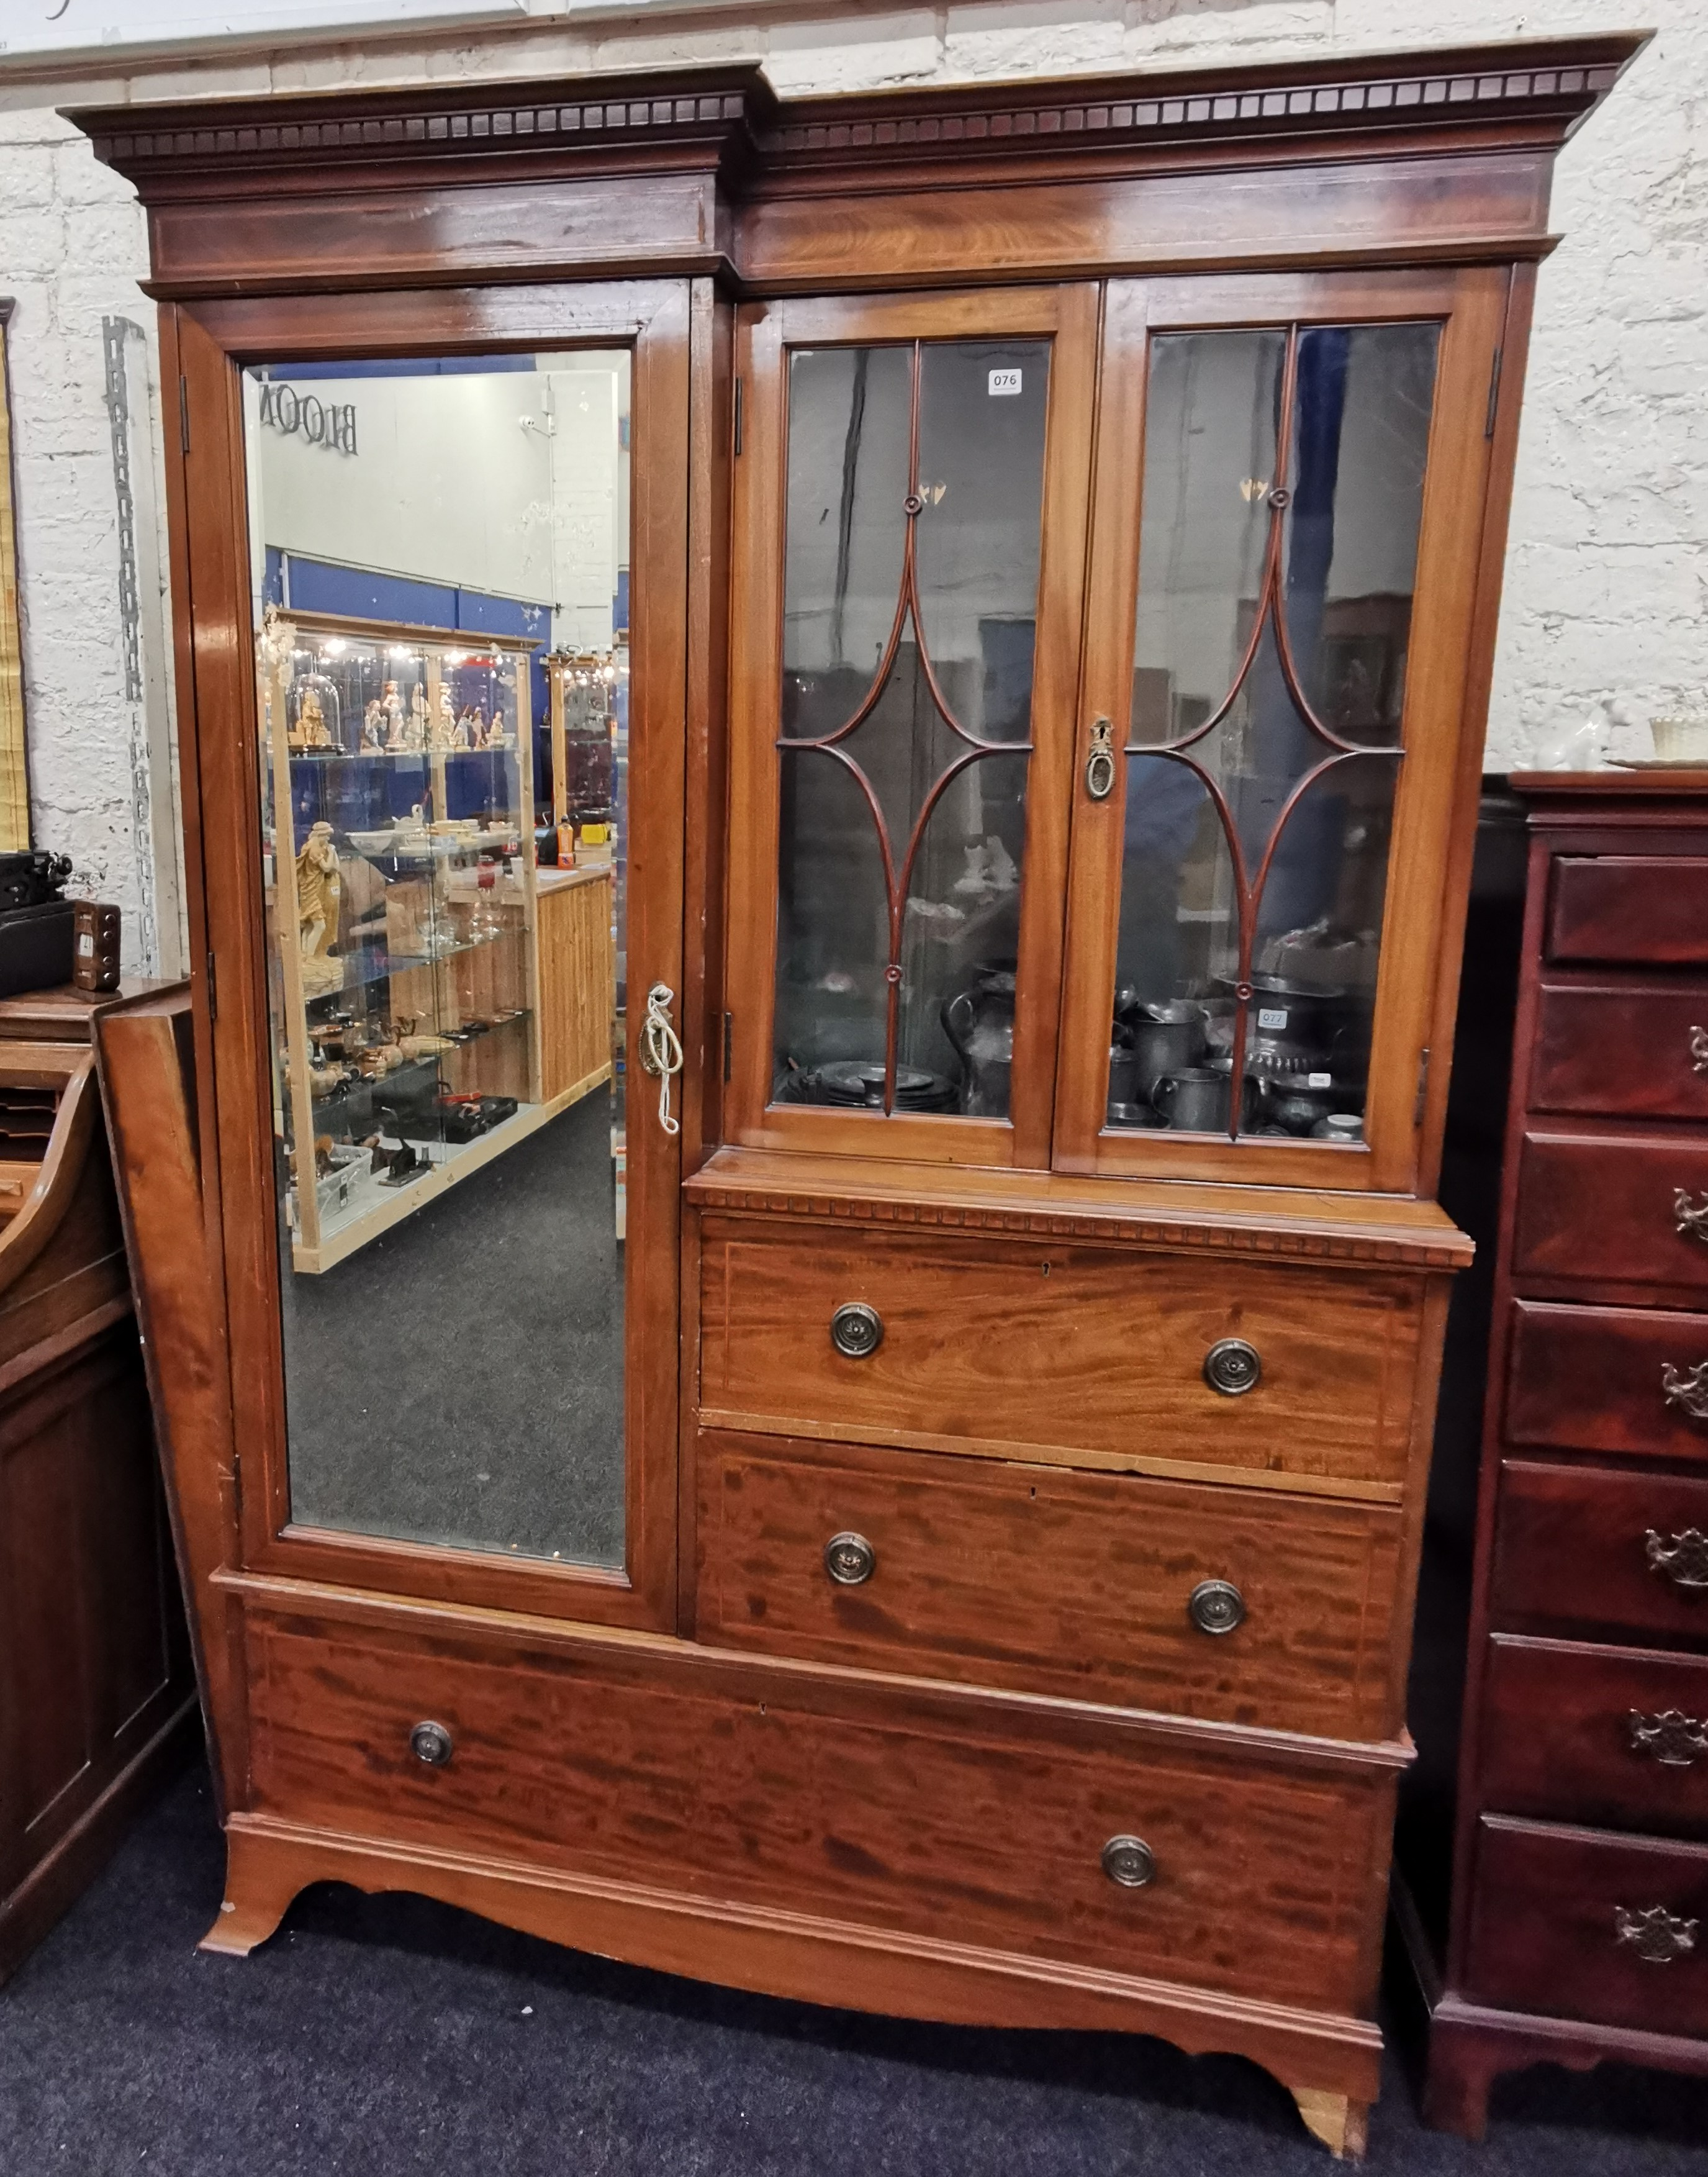 Lot 76 - VICTORIAN INLAID COMBINED WARDROBE & DRAWERS